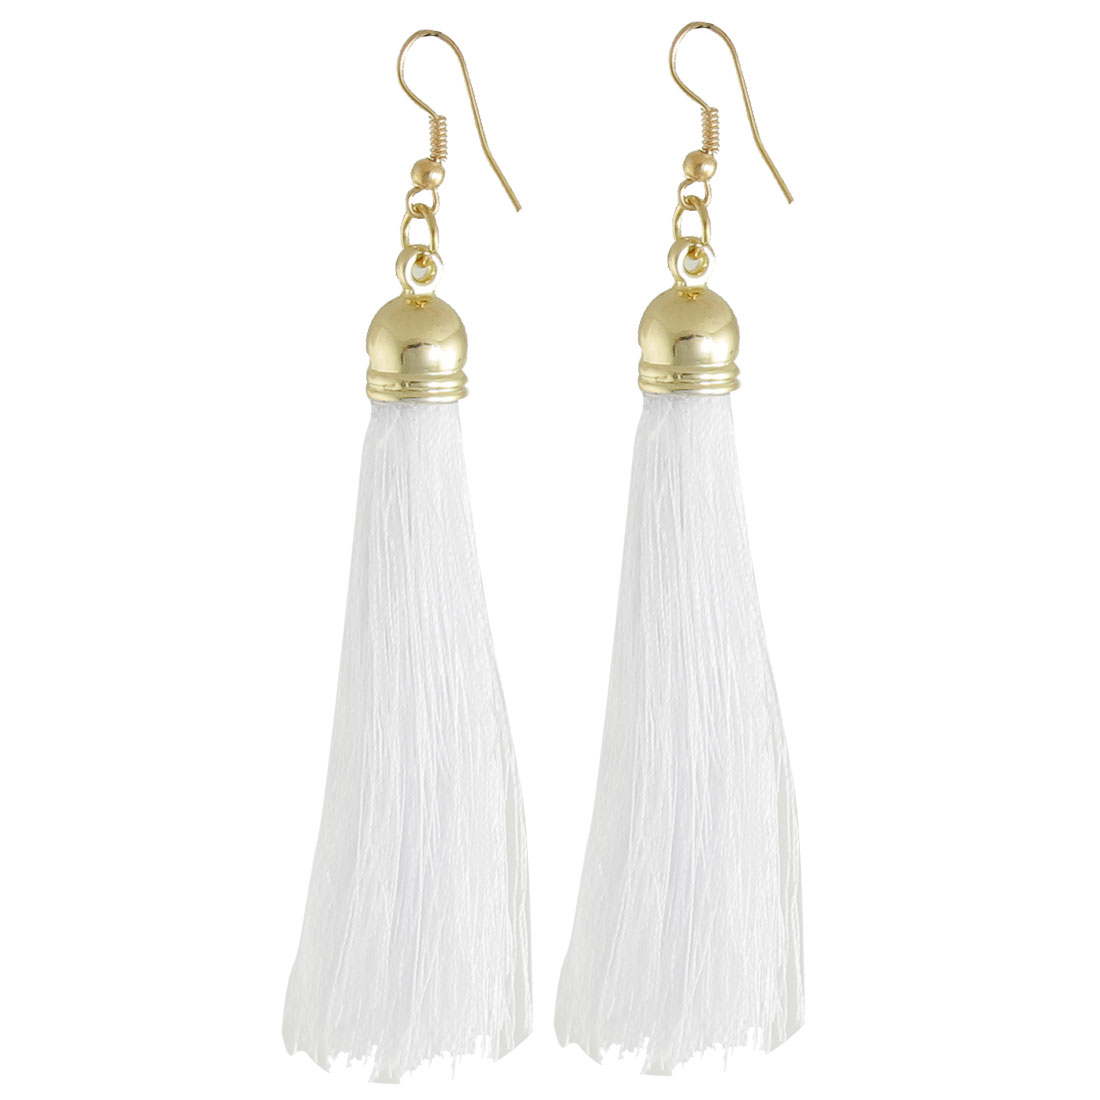 Pair White Nylon Tassel Dangle Fish Hook Earrings Jewelry for Women